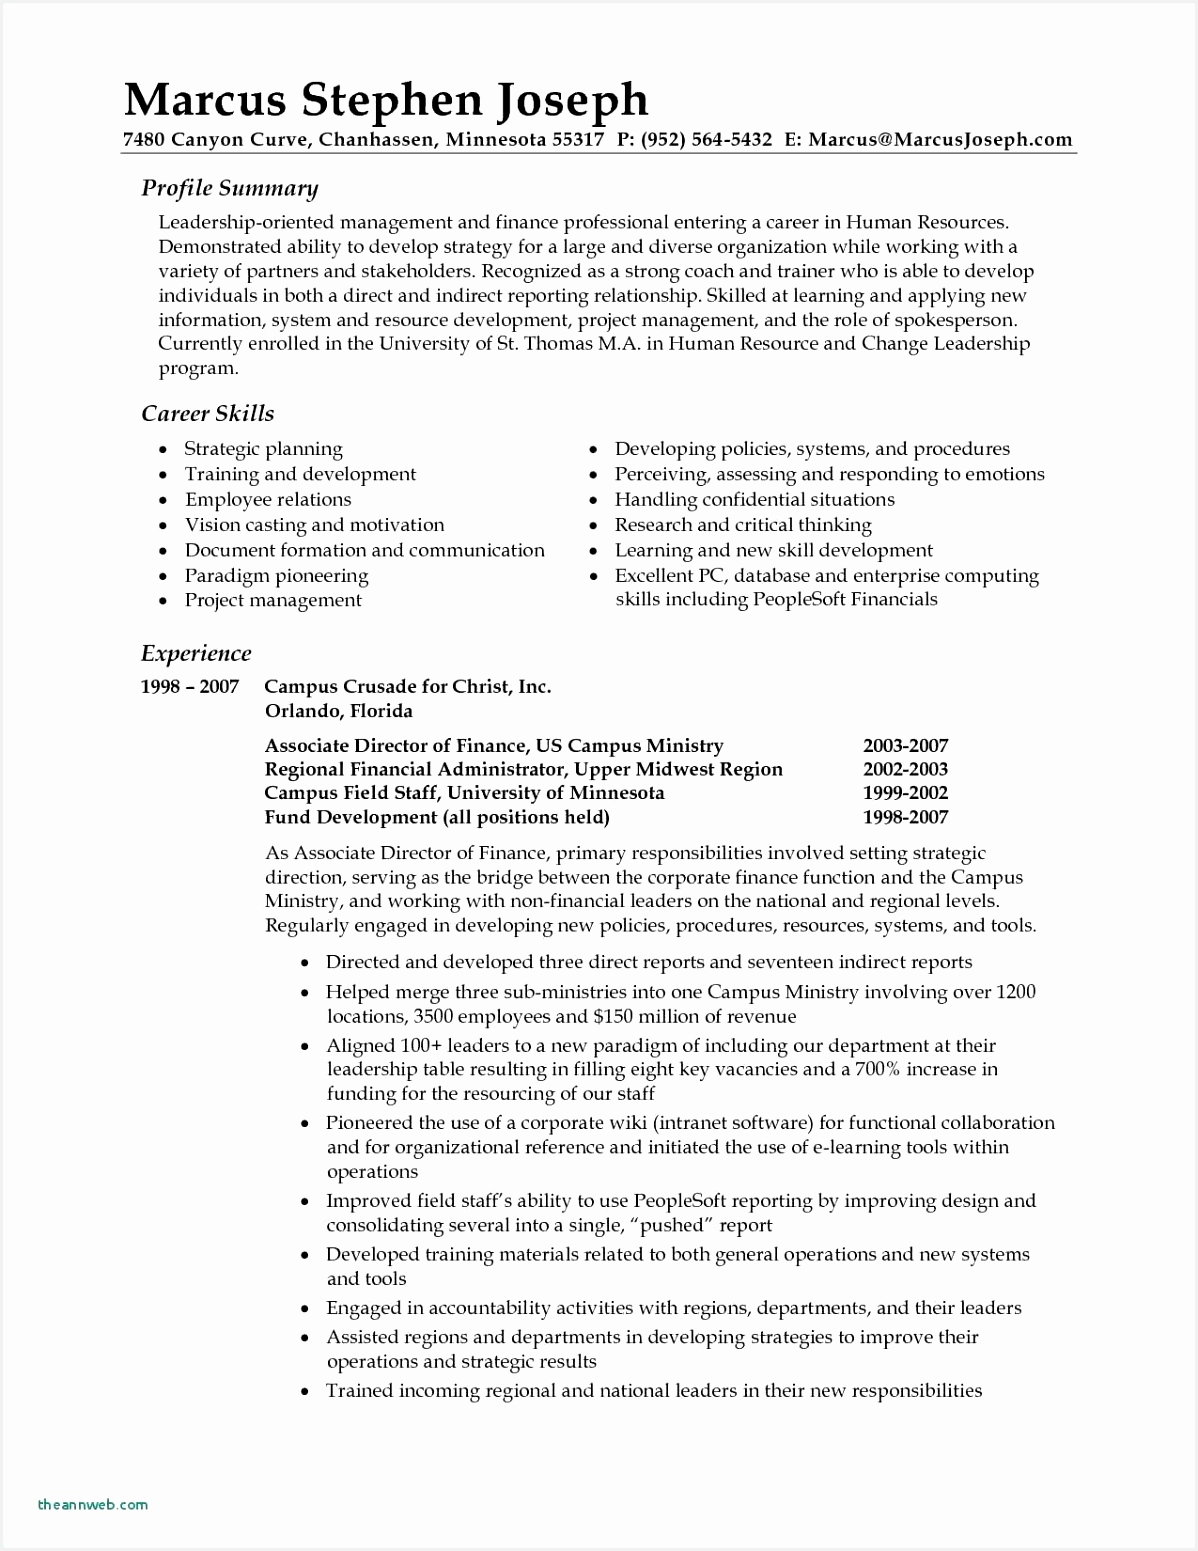 puter skills resume example sample sample resume logistics management specialist resume professional of puter skills resume example 15511198drrUf